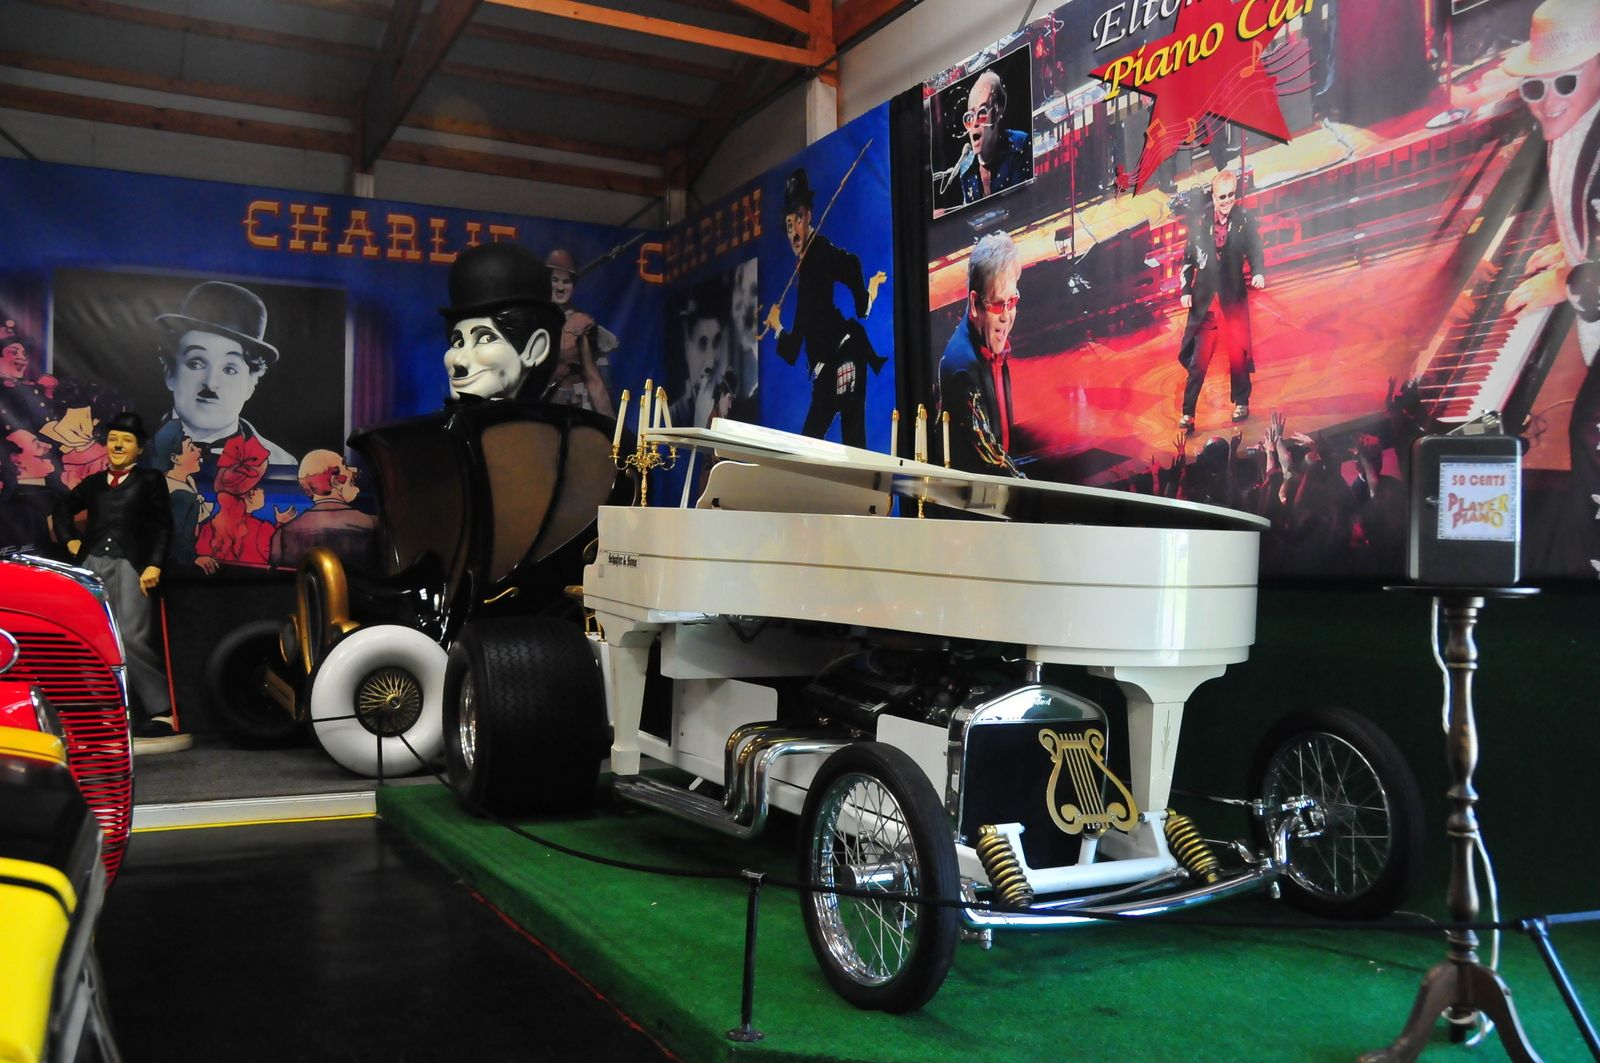 Piano car that actually drives and plays music on display at the ...